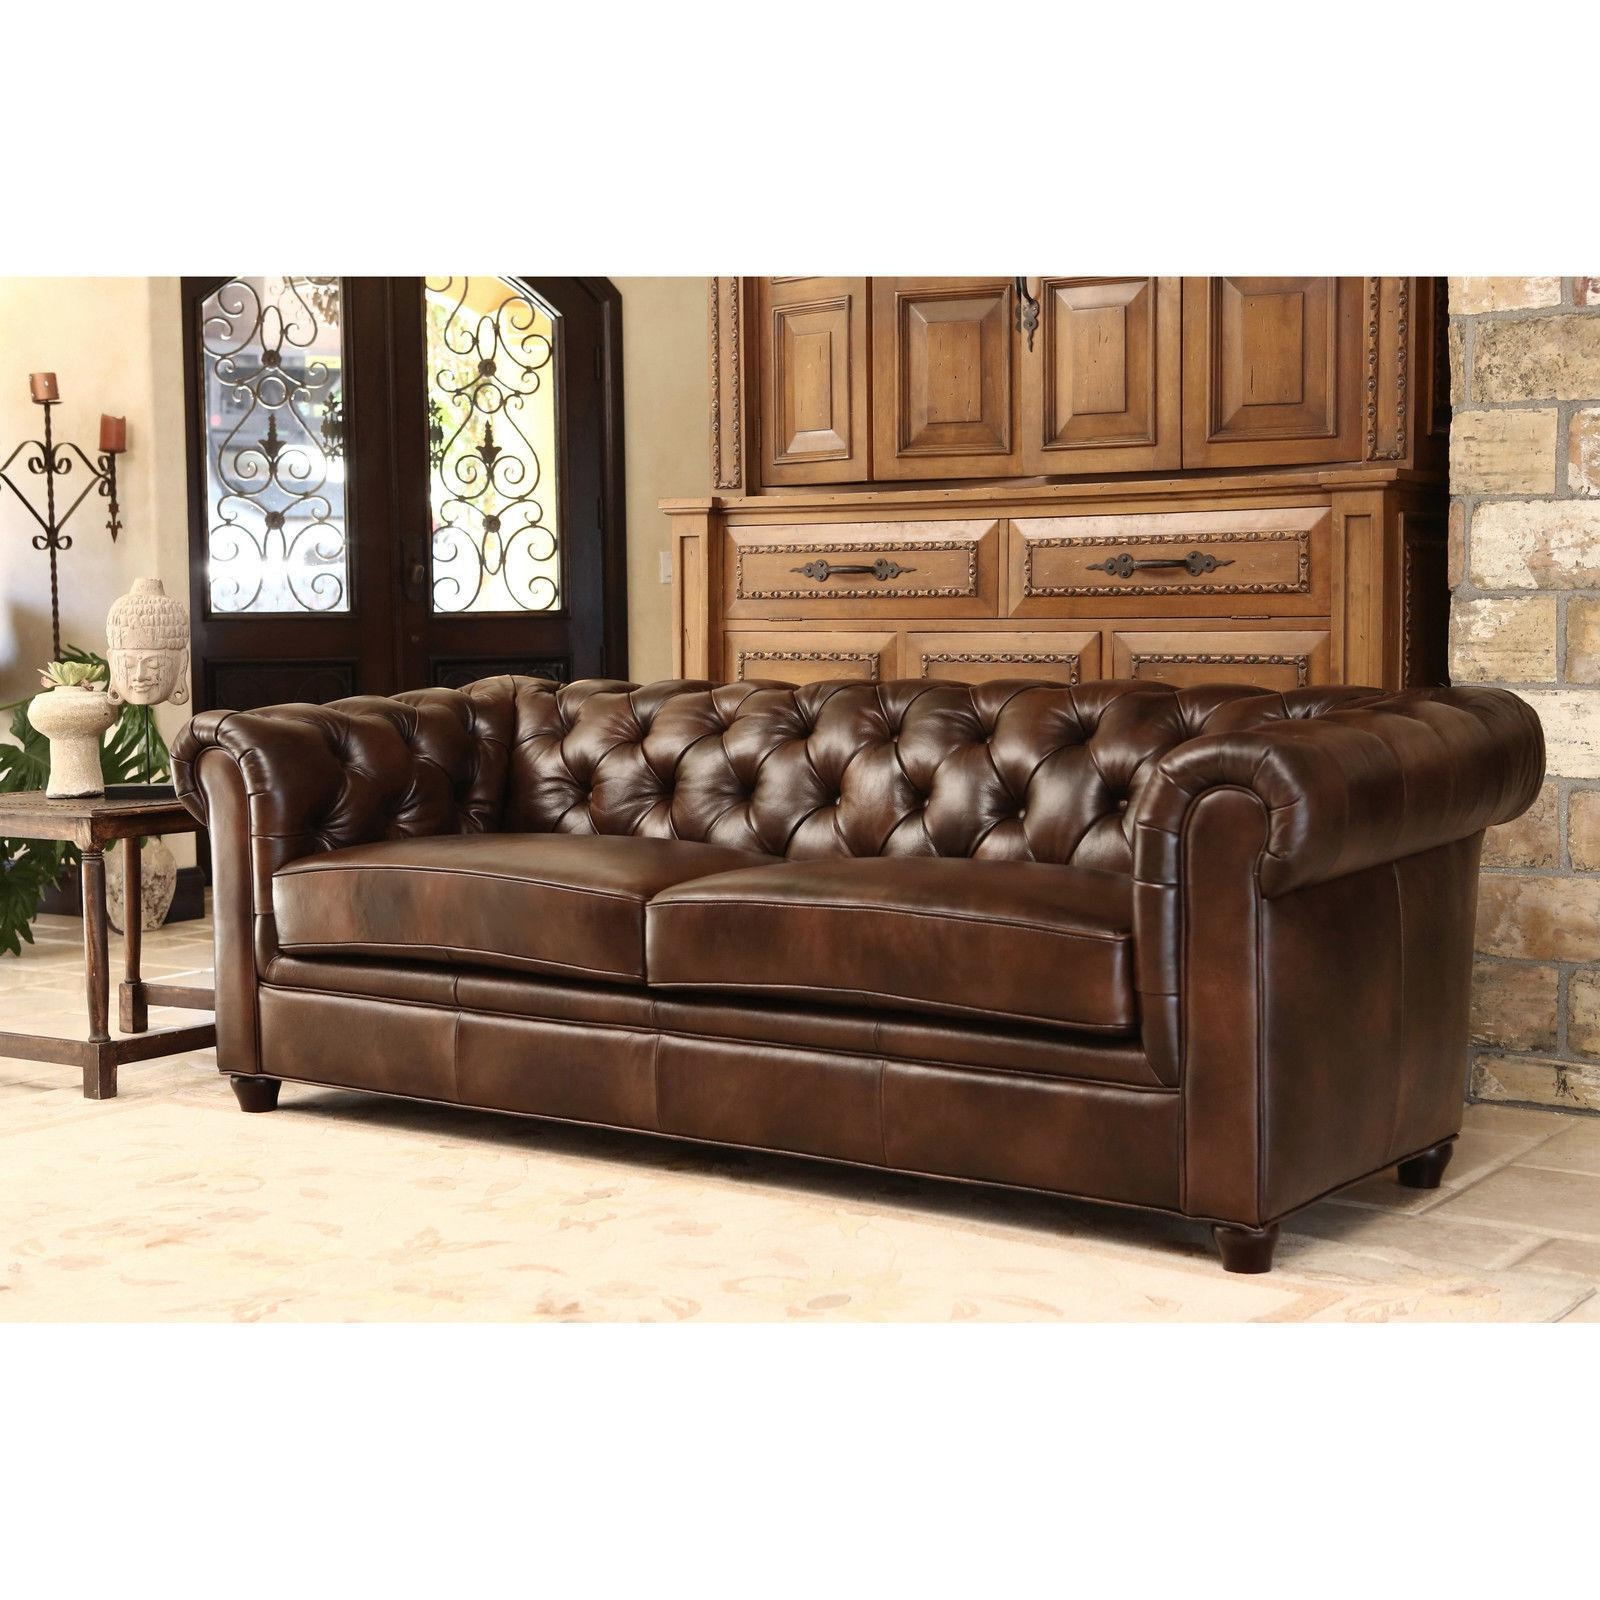 Oversized Brown Leather Tufted Sofa Button Tufted Design Solid Inside Brown Tufted Sofas (View 14 of 20)